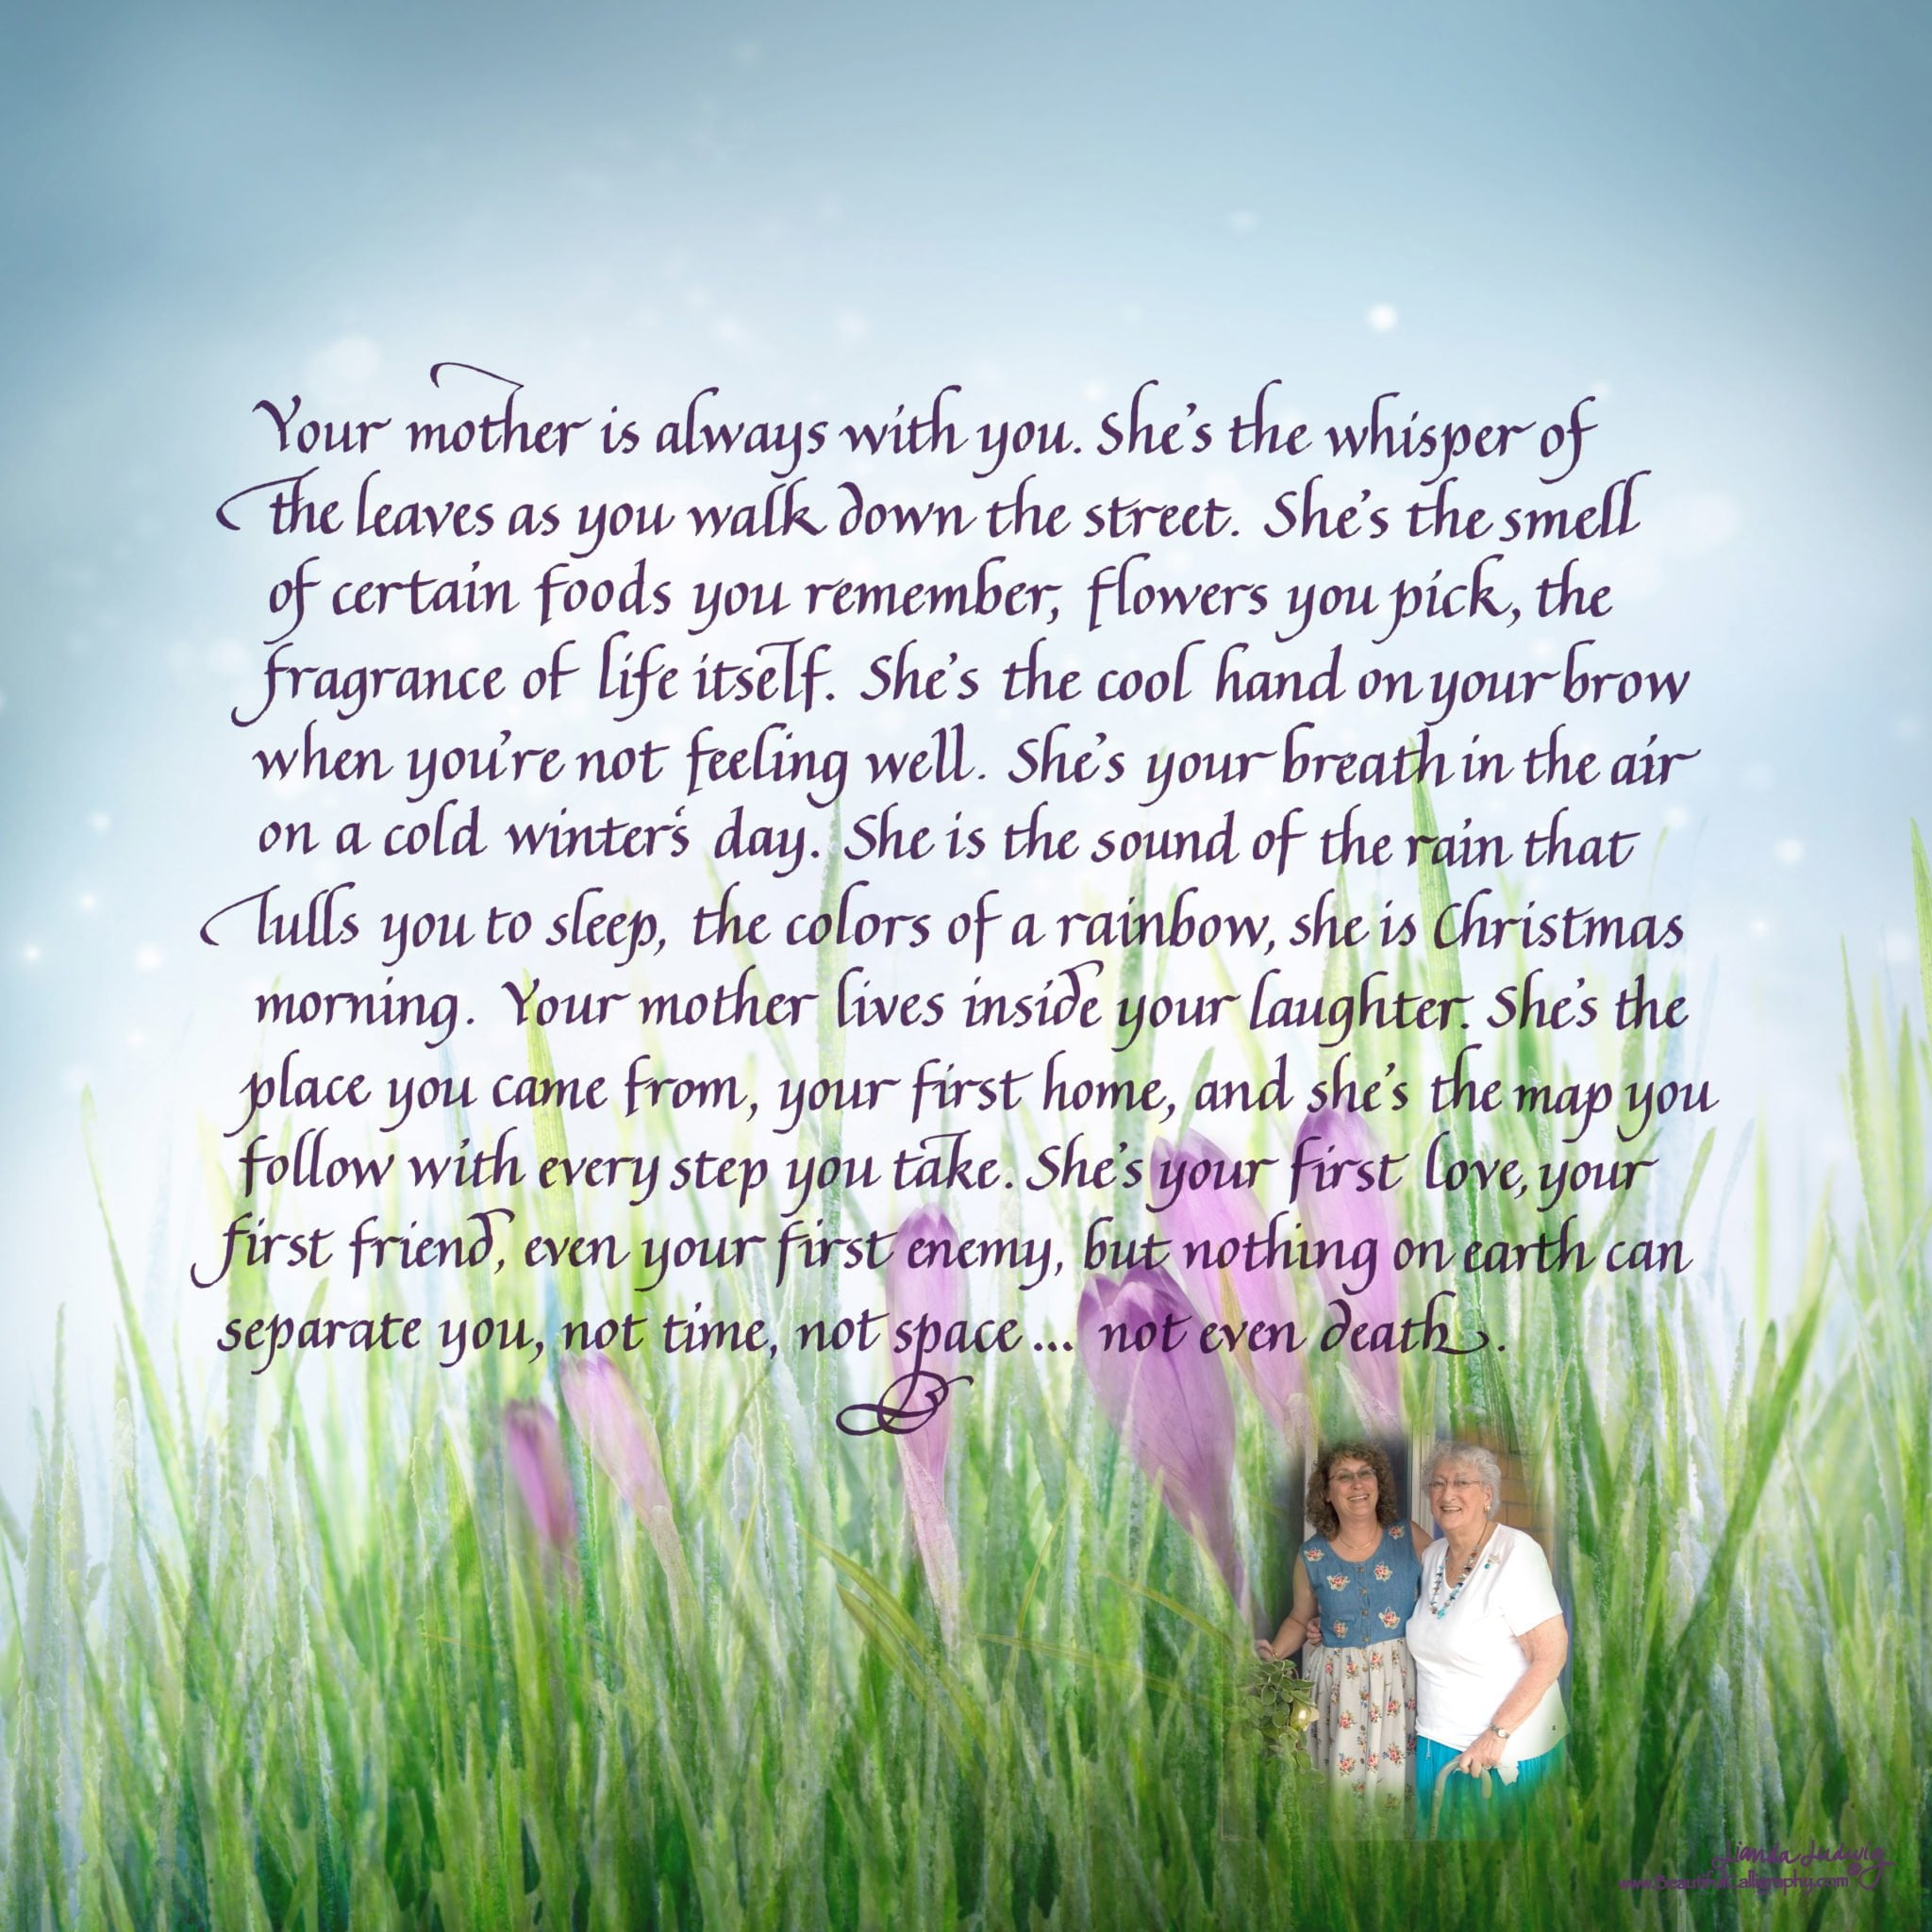 Mothers Day poem for memorial or gift